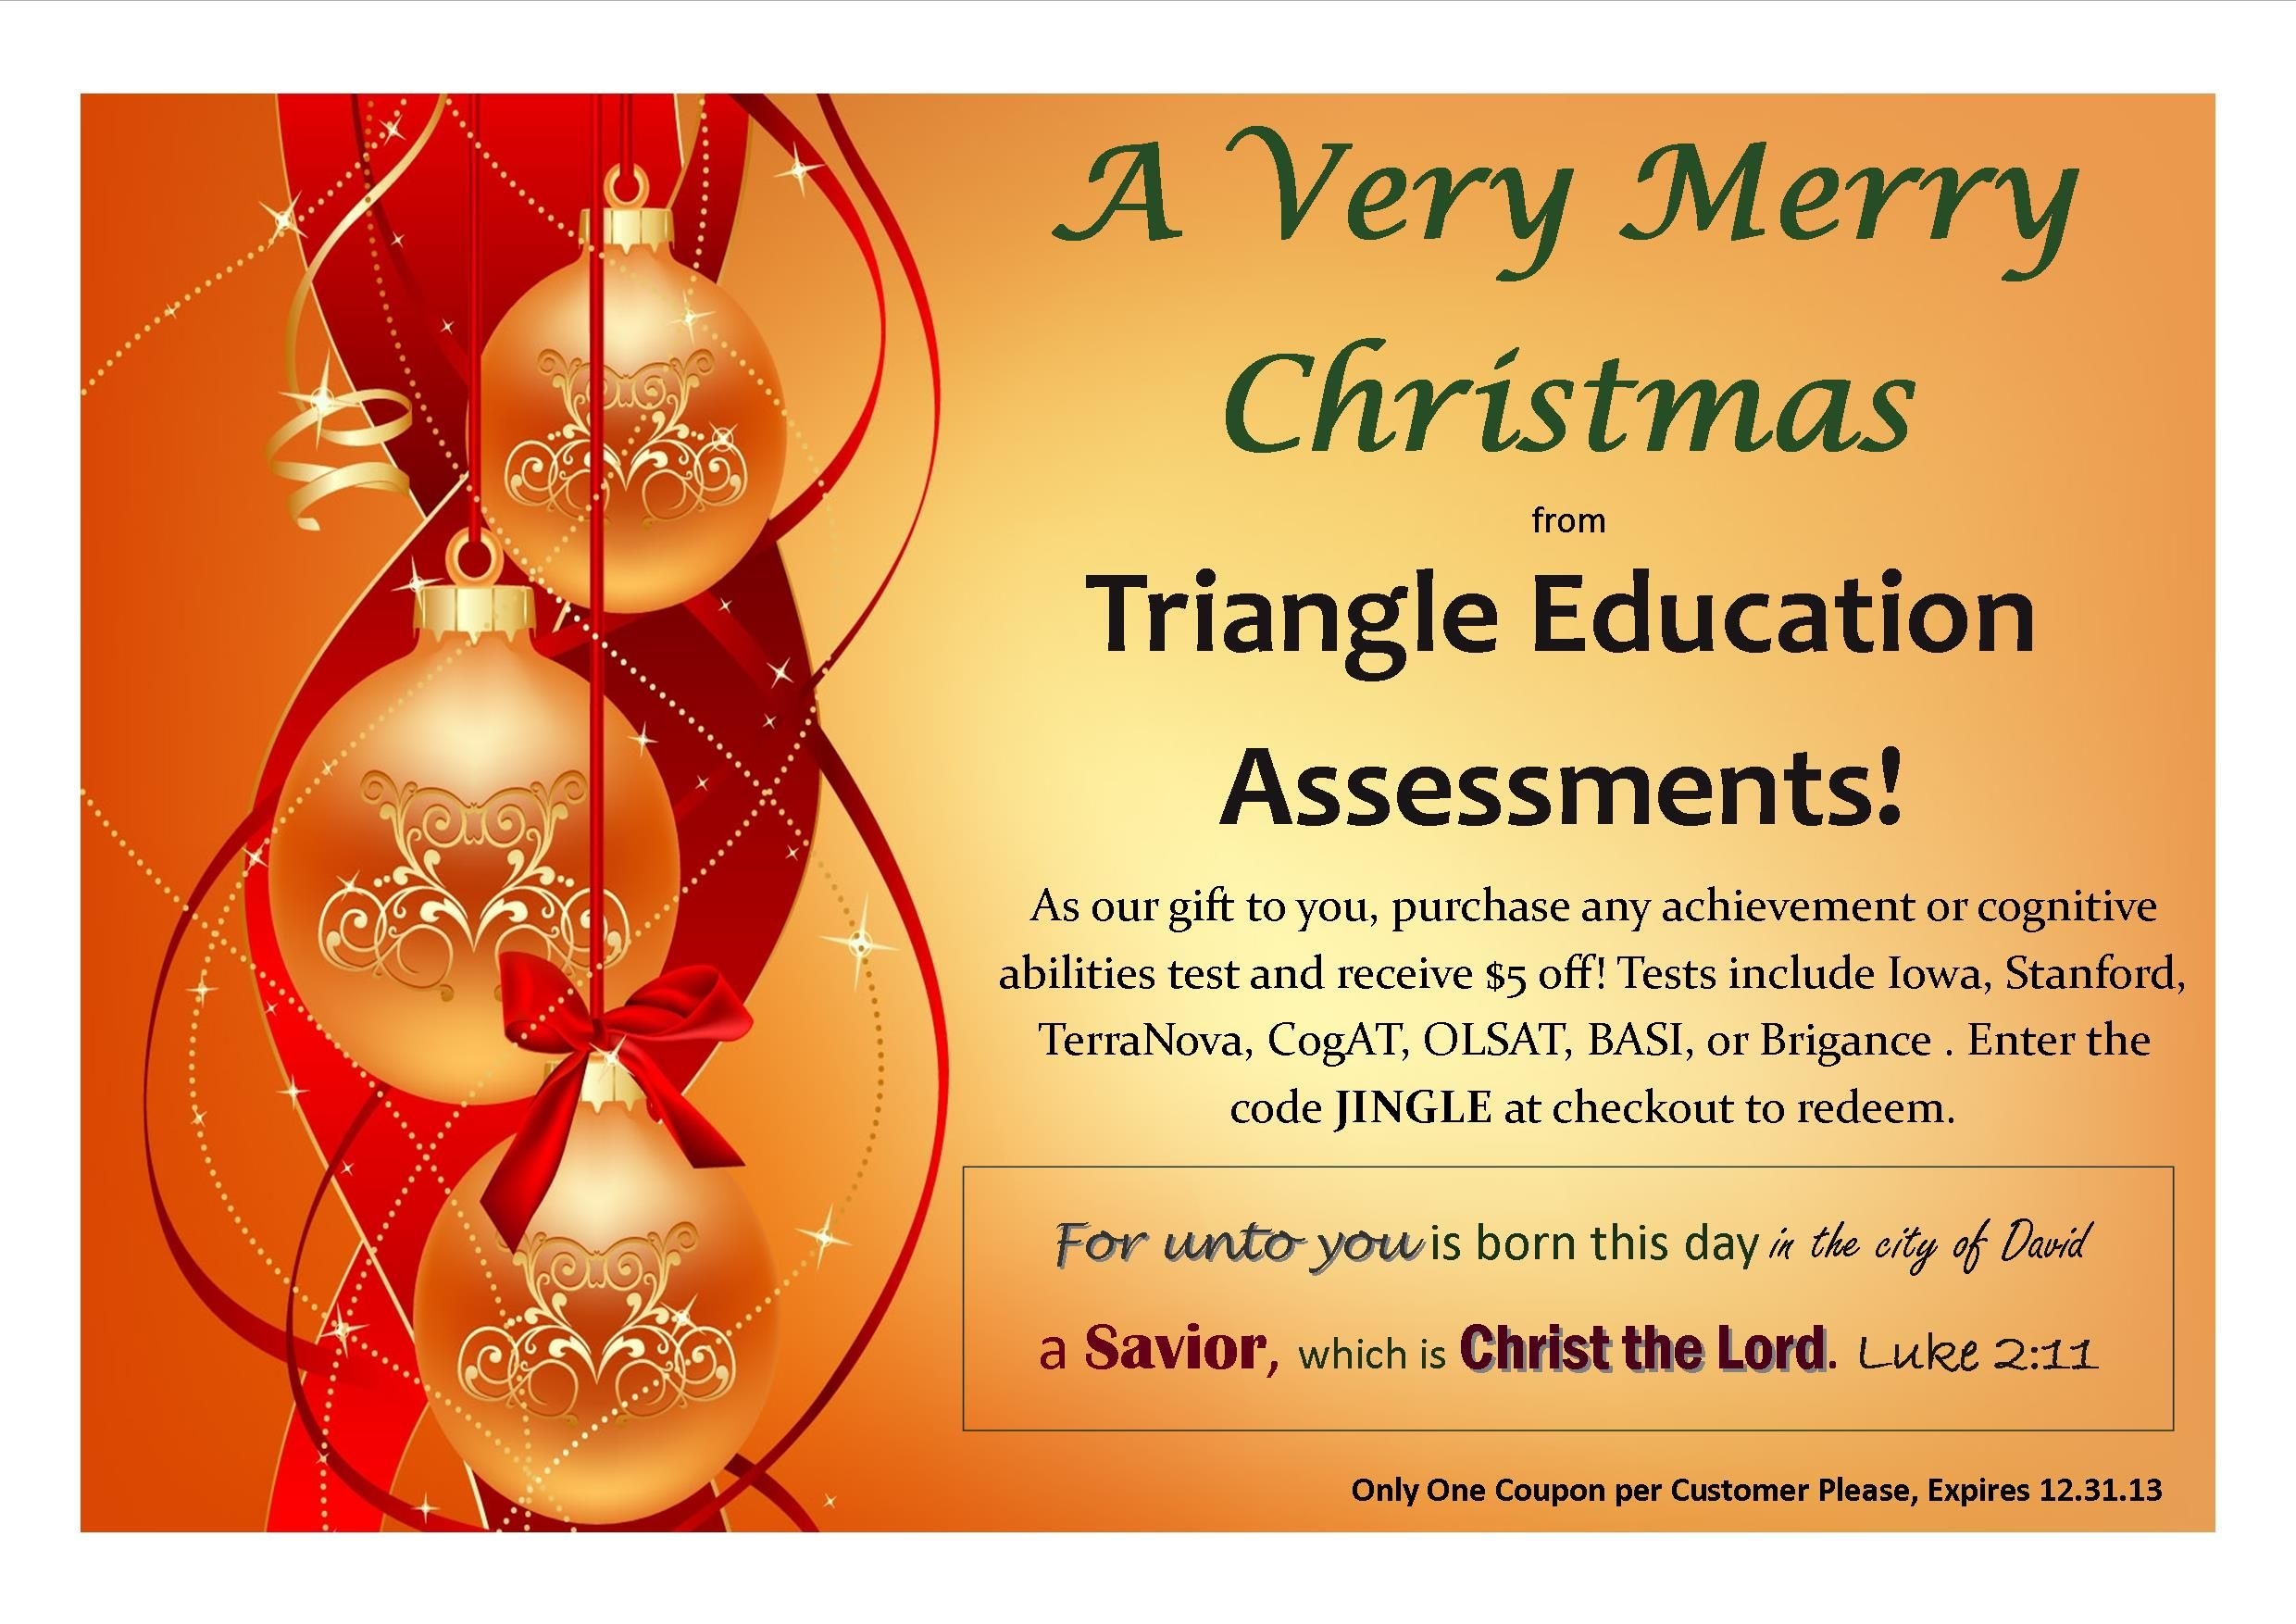 Triangle education assessments triangleed on pinterest fandeluxe Image collections